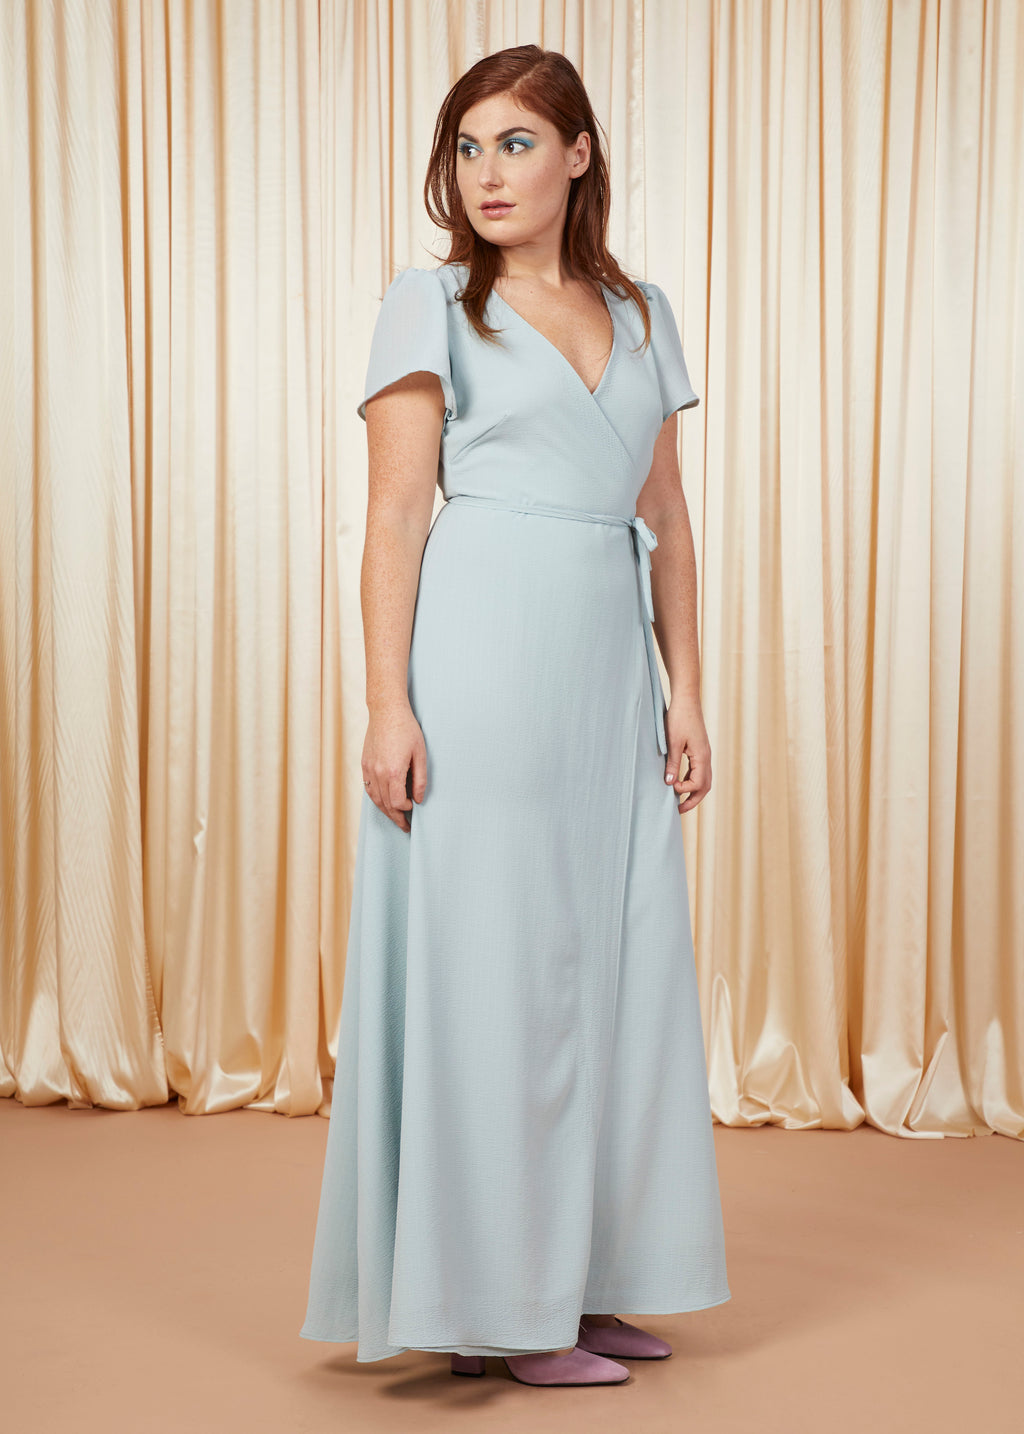 Amazing Grace | Chiffon Wrap Gown | Eggshell Blue